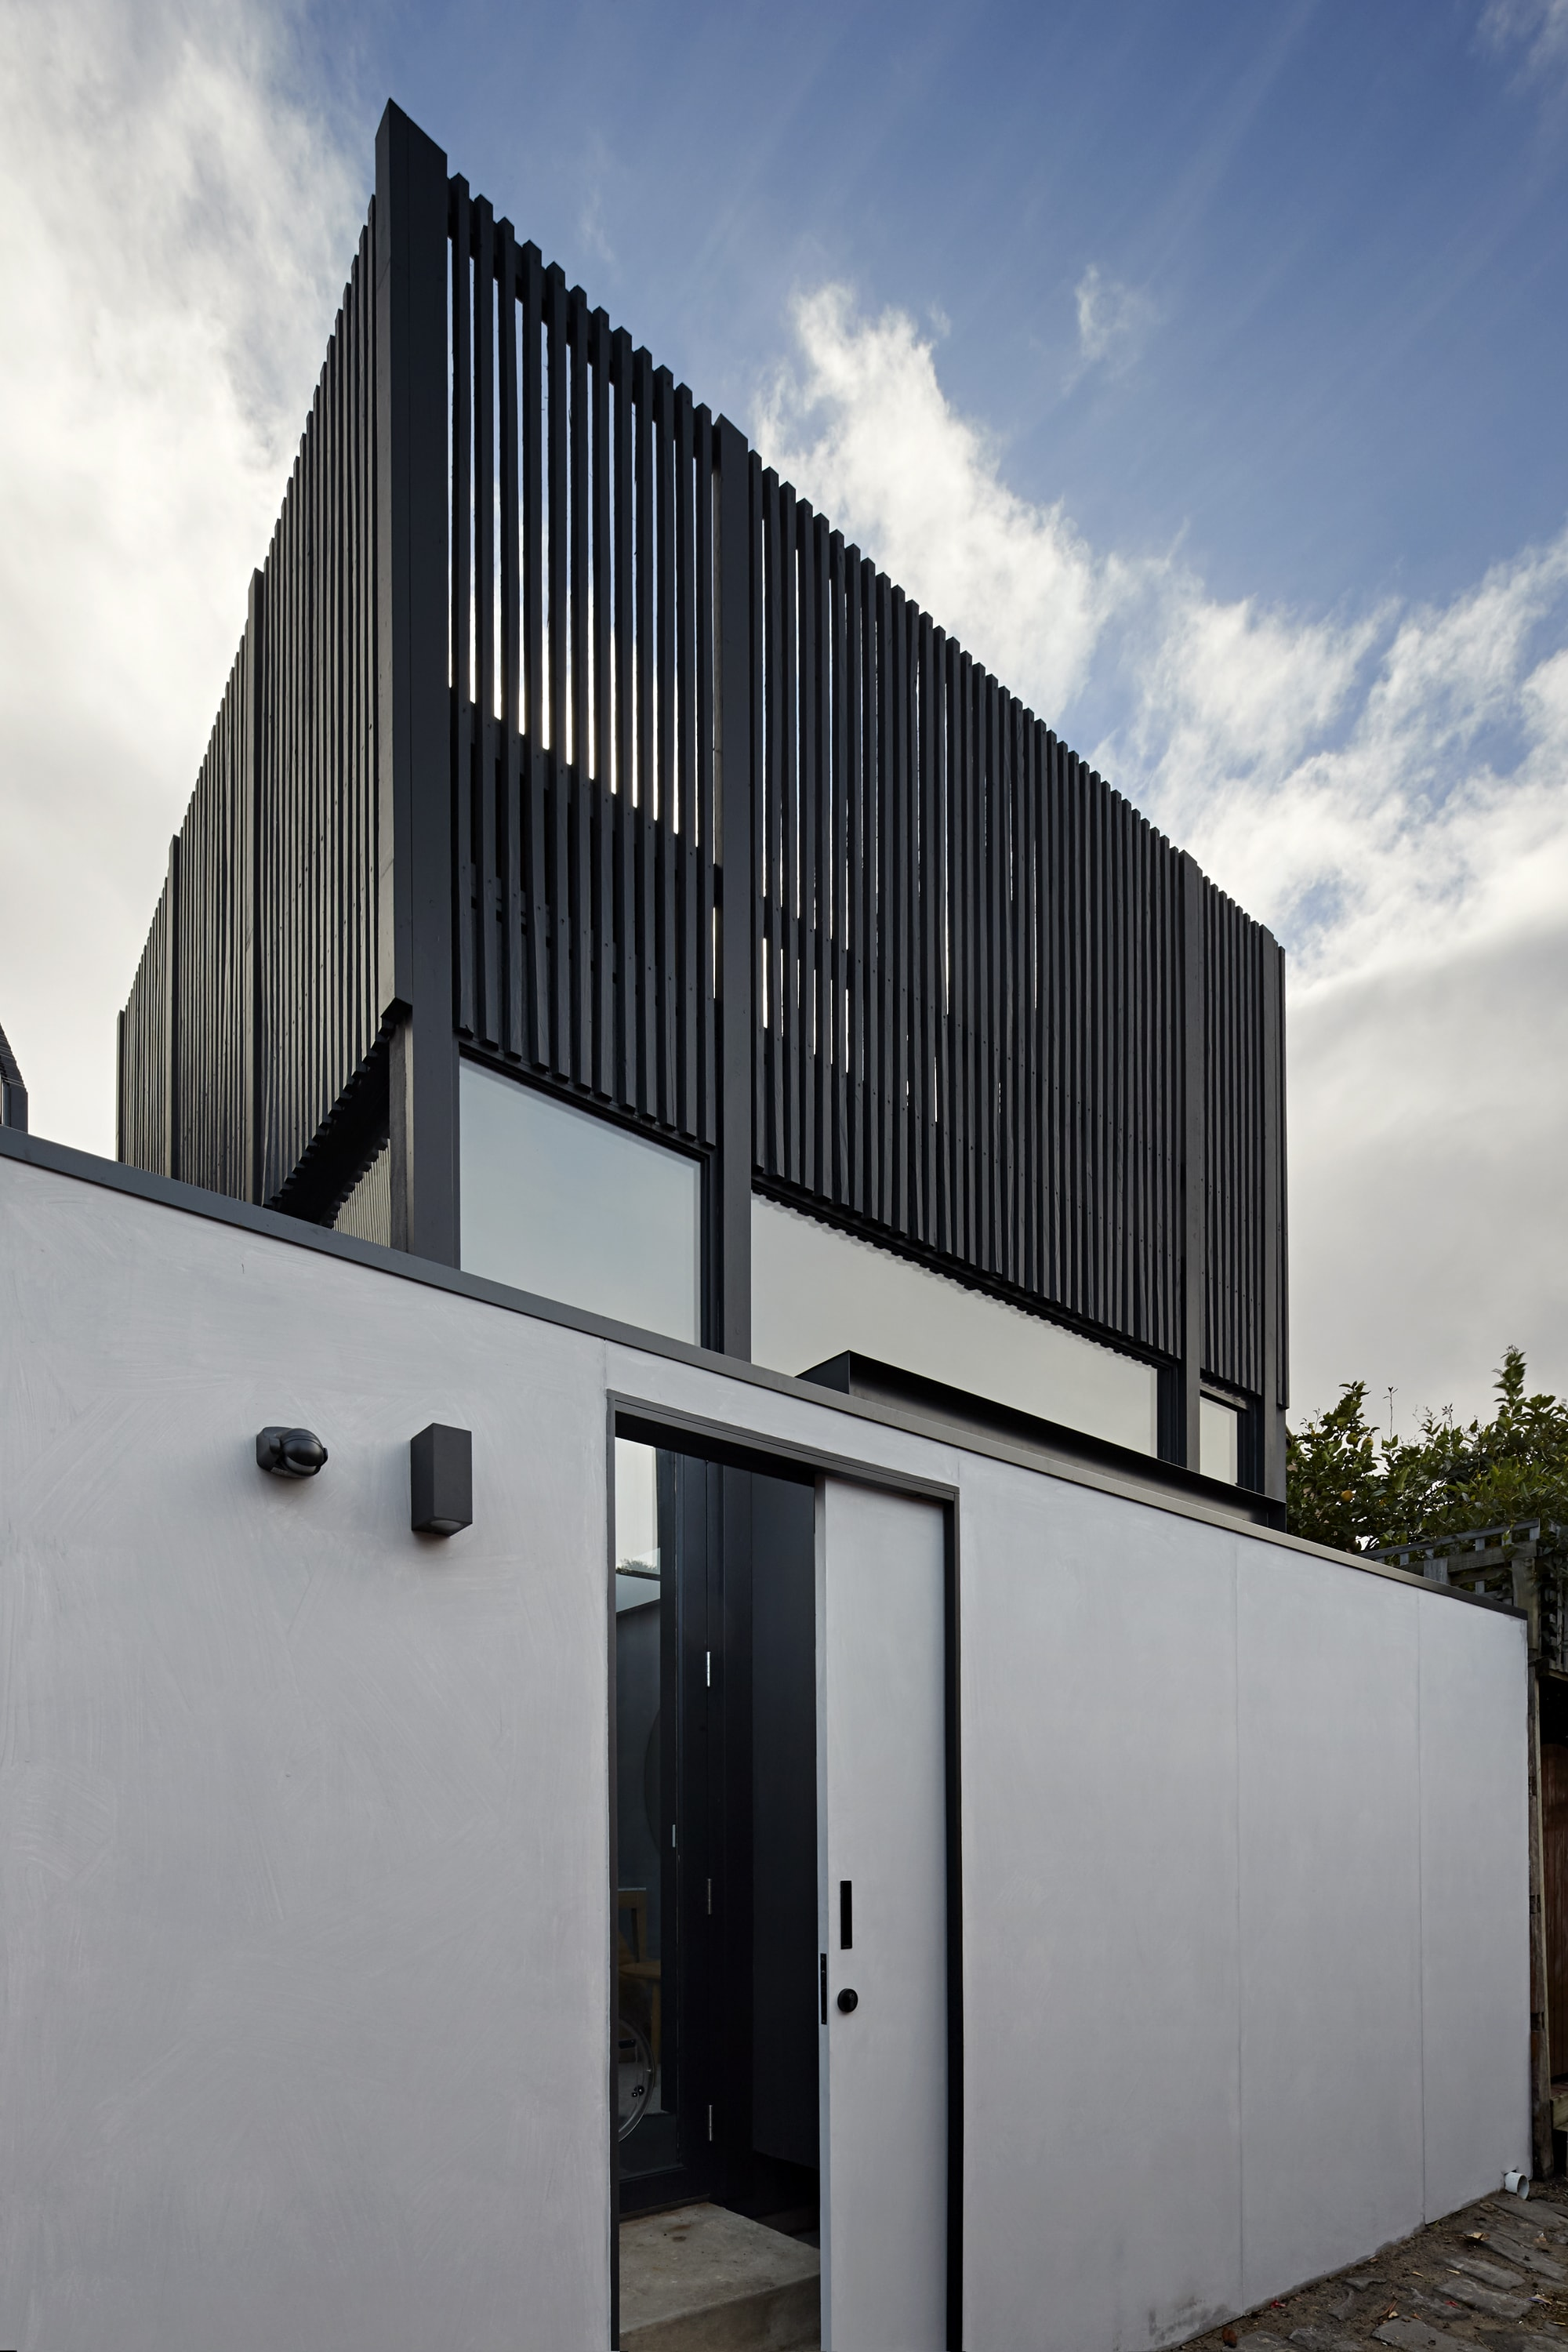 The Pocket House By Whiting Architects The Fisher & Paykel Series Melbourne, Victoria, Australiaf&p Whiting Littleogrady ©smg 9041 Min